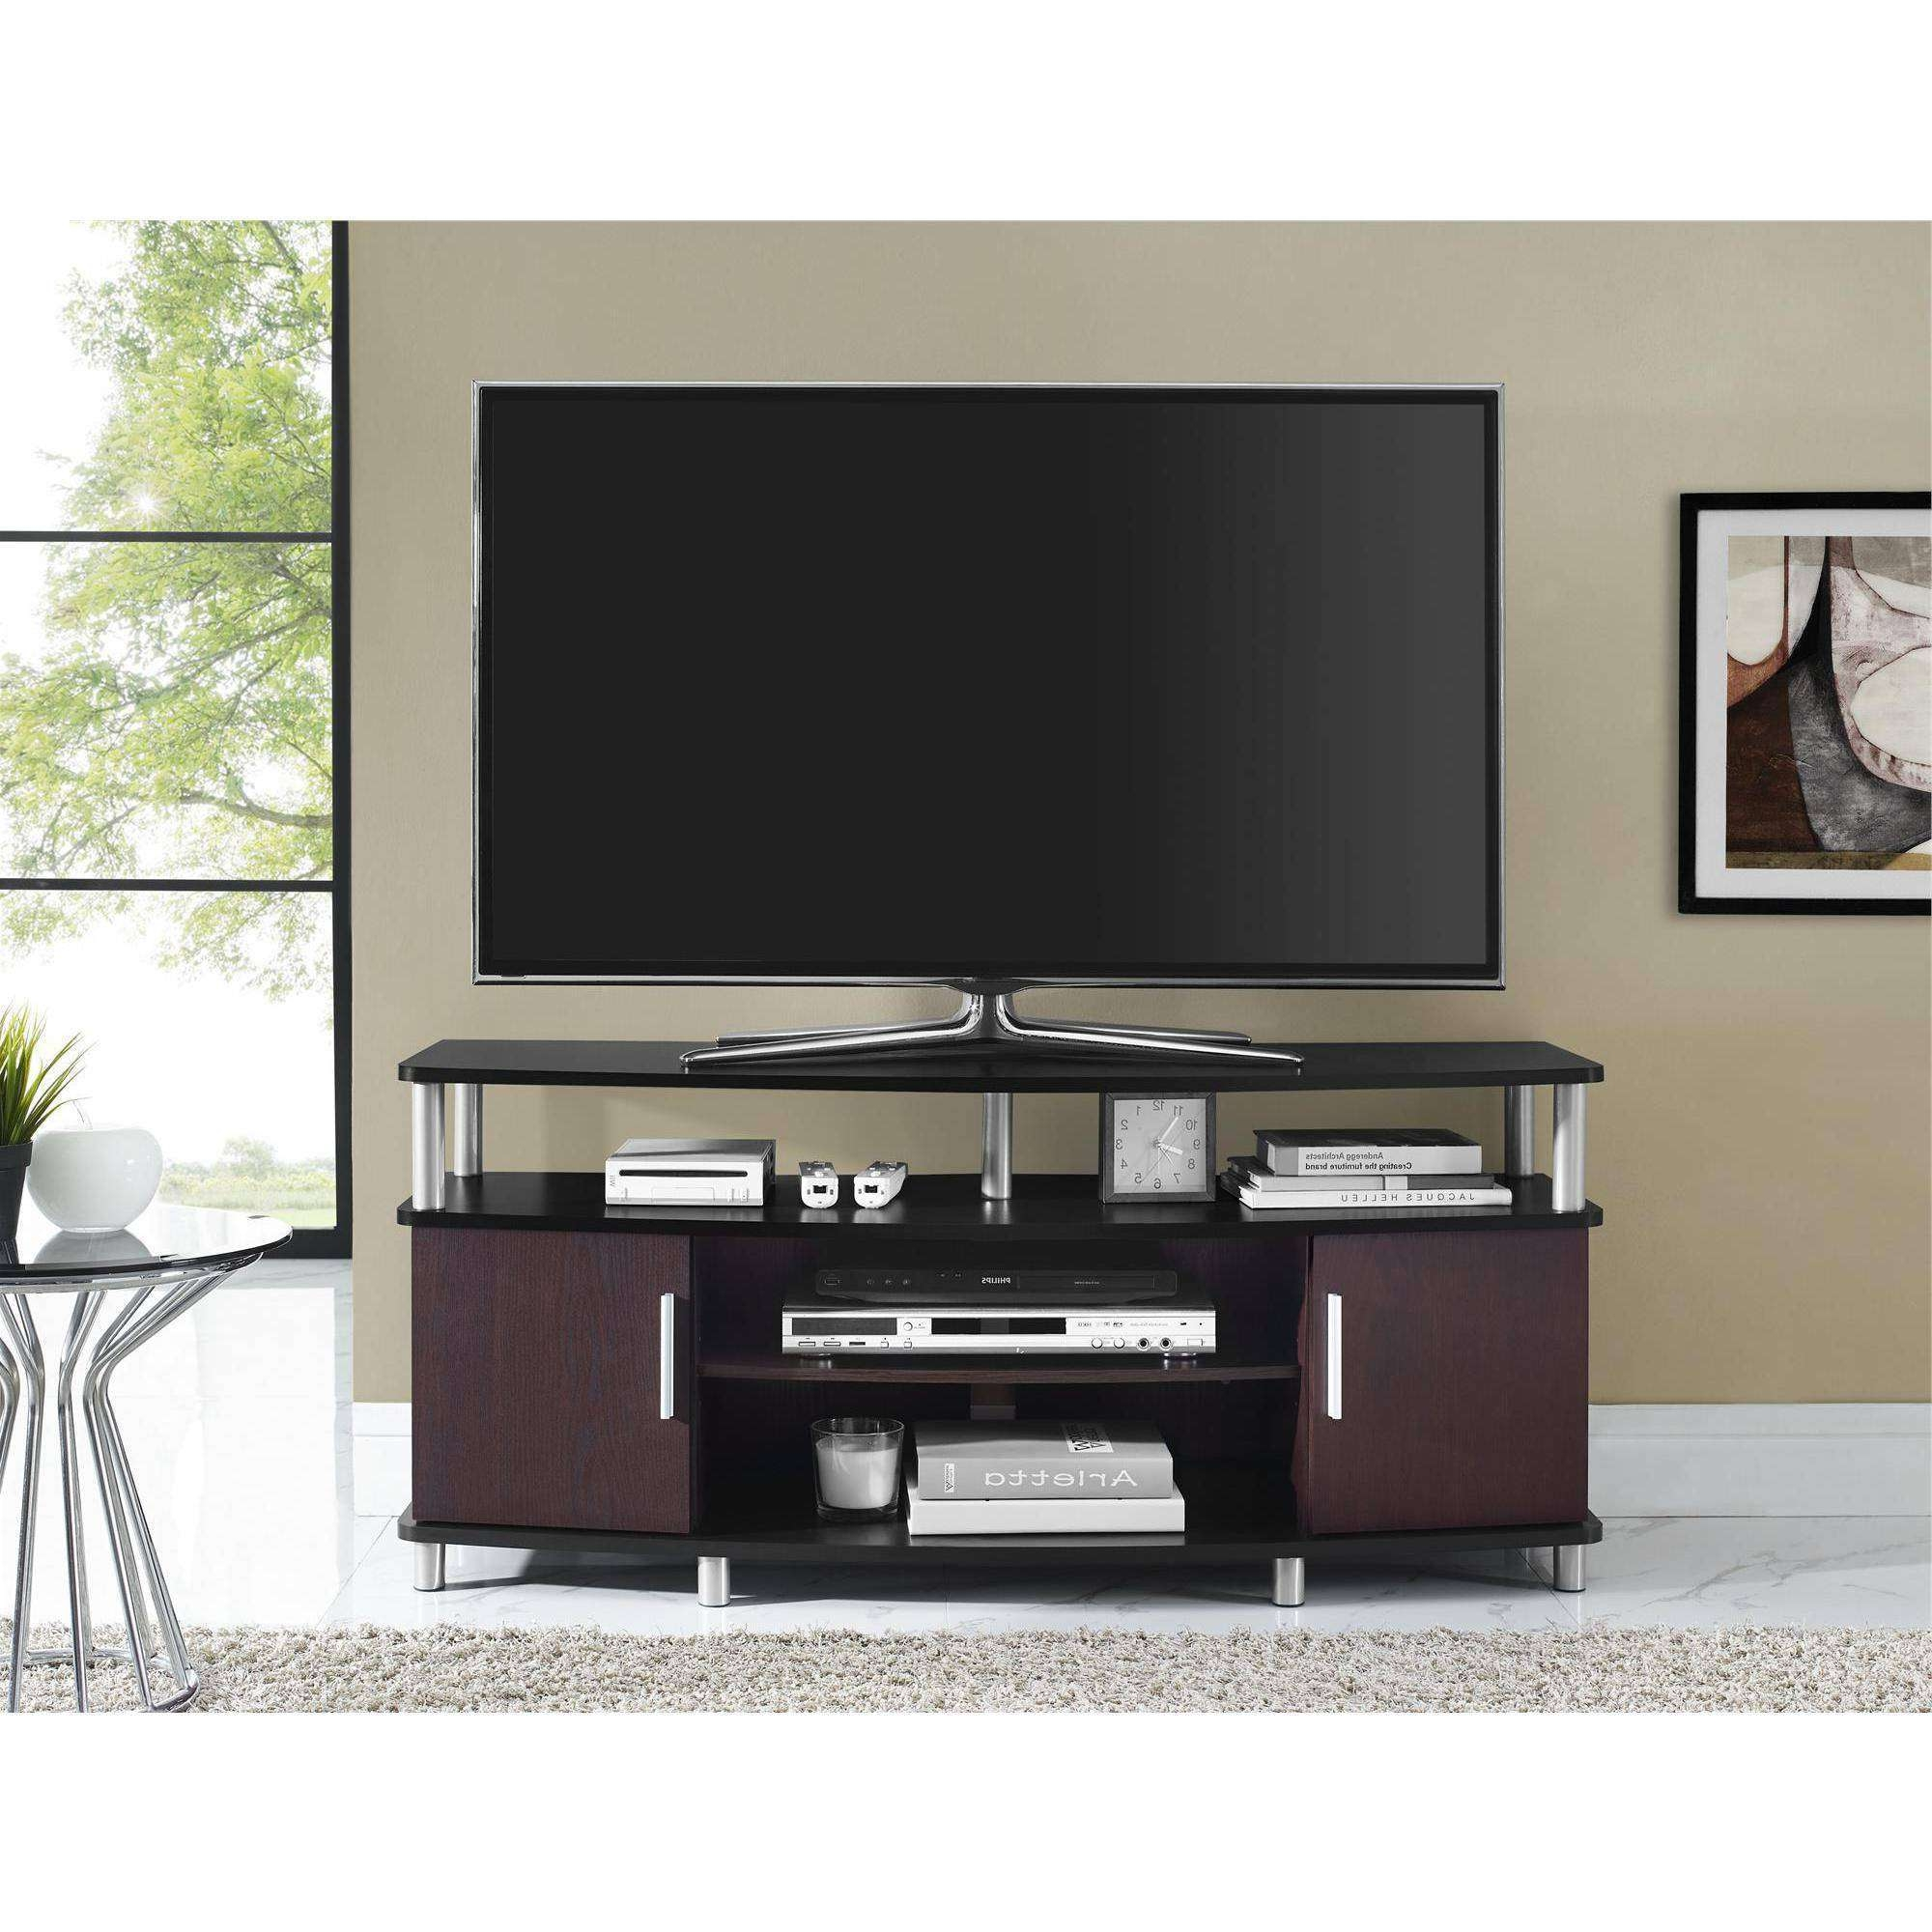 Flat Screen Tv Stands With Mount Furnitures Modern For Inch In Modern Tv Stands For 60 Inch Tvs (View 5 of 15)